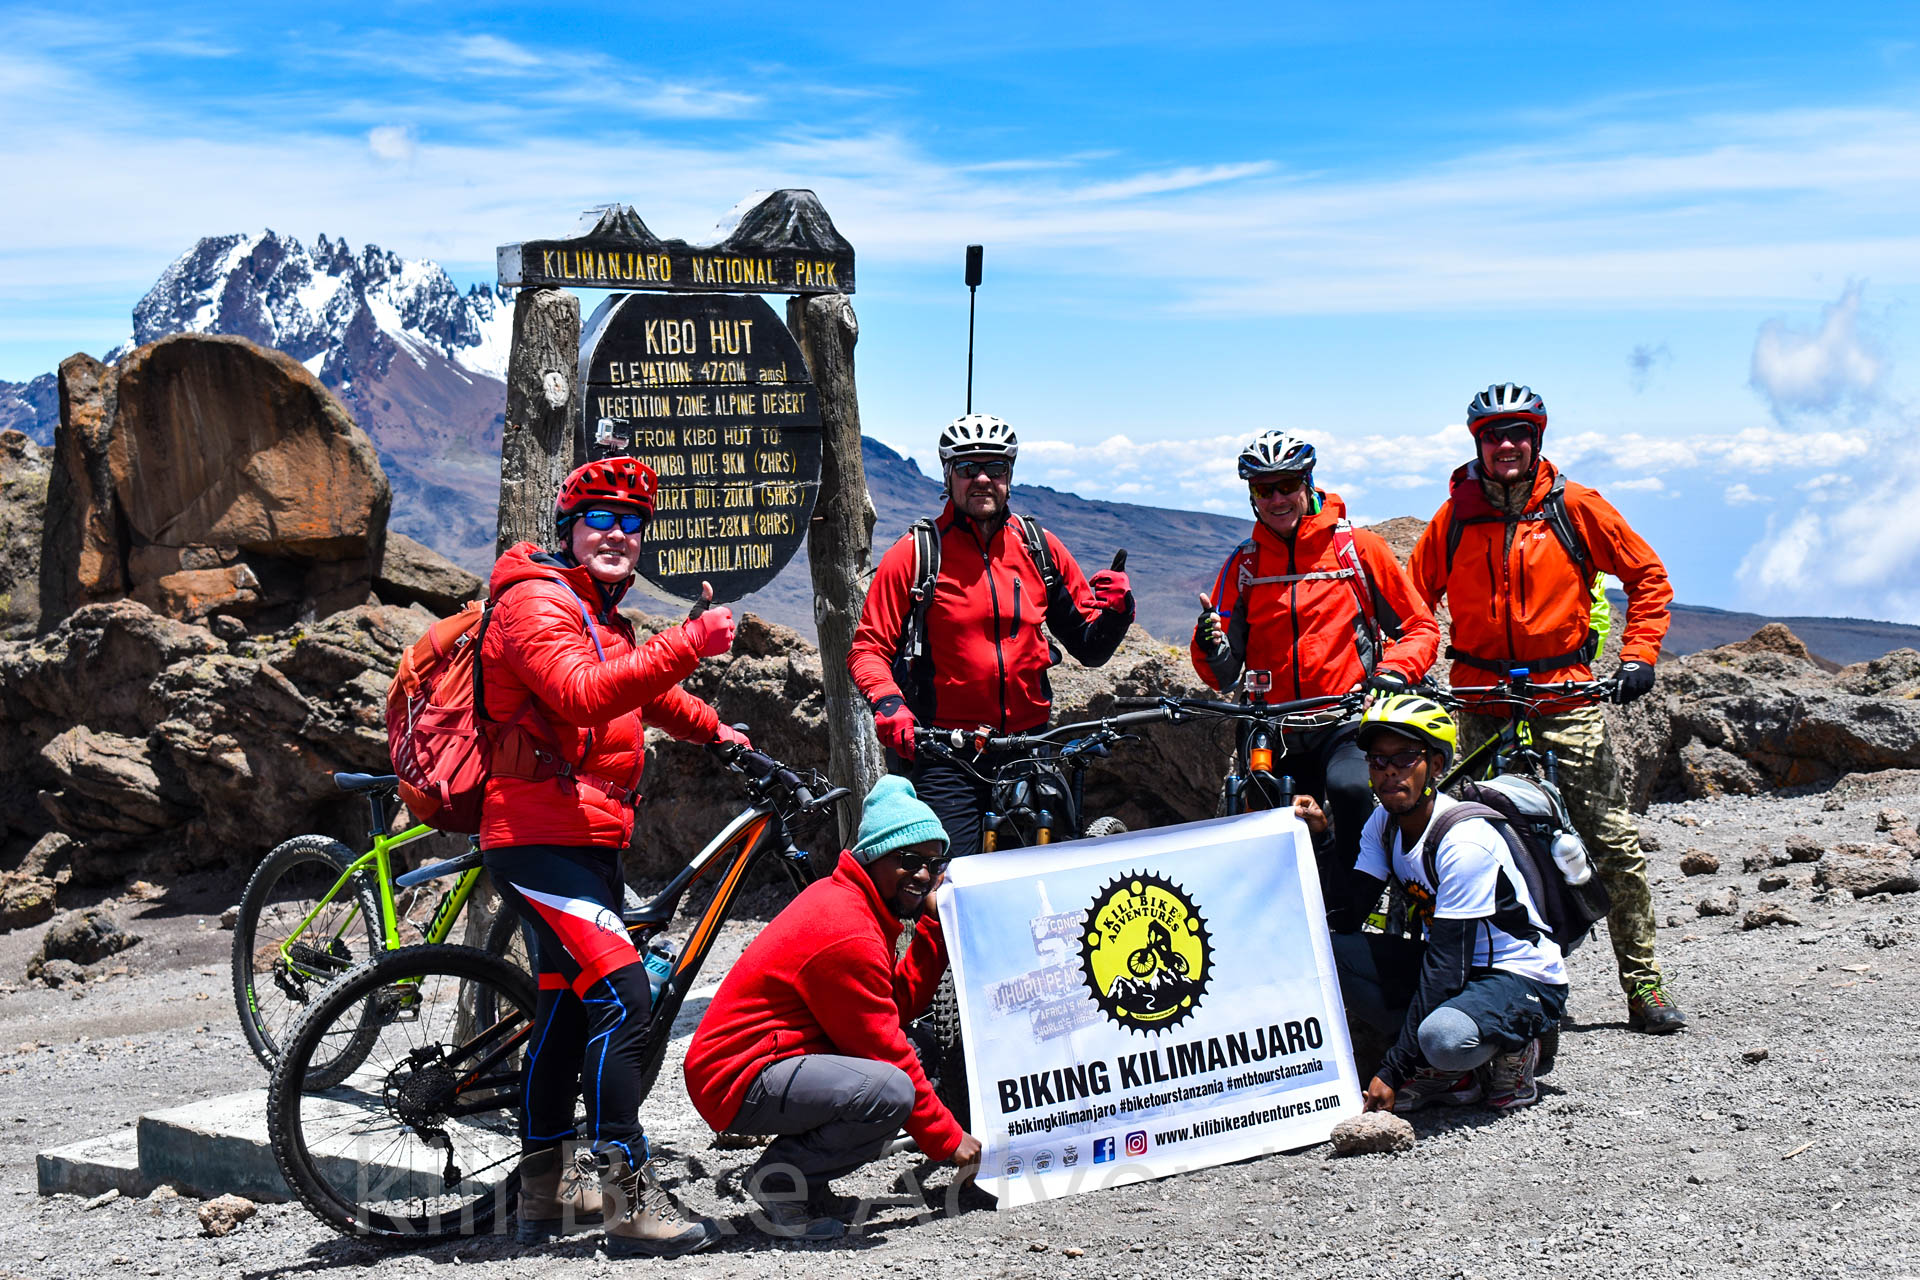 Kilimanjaro-bike-and-cycling-tour (43)